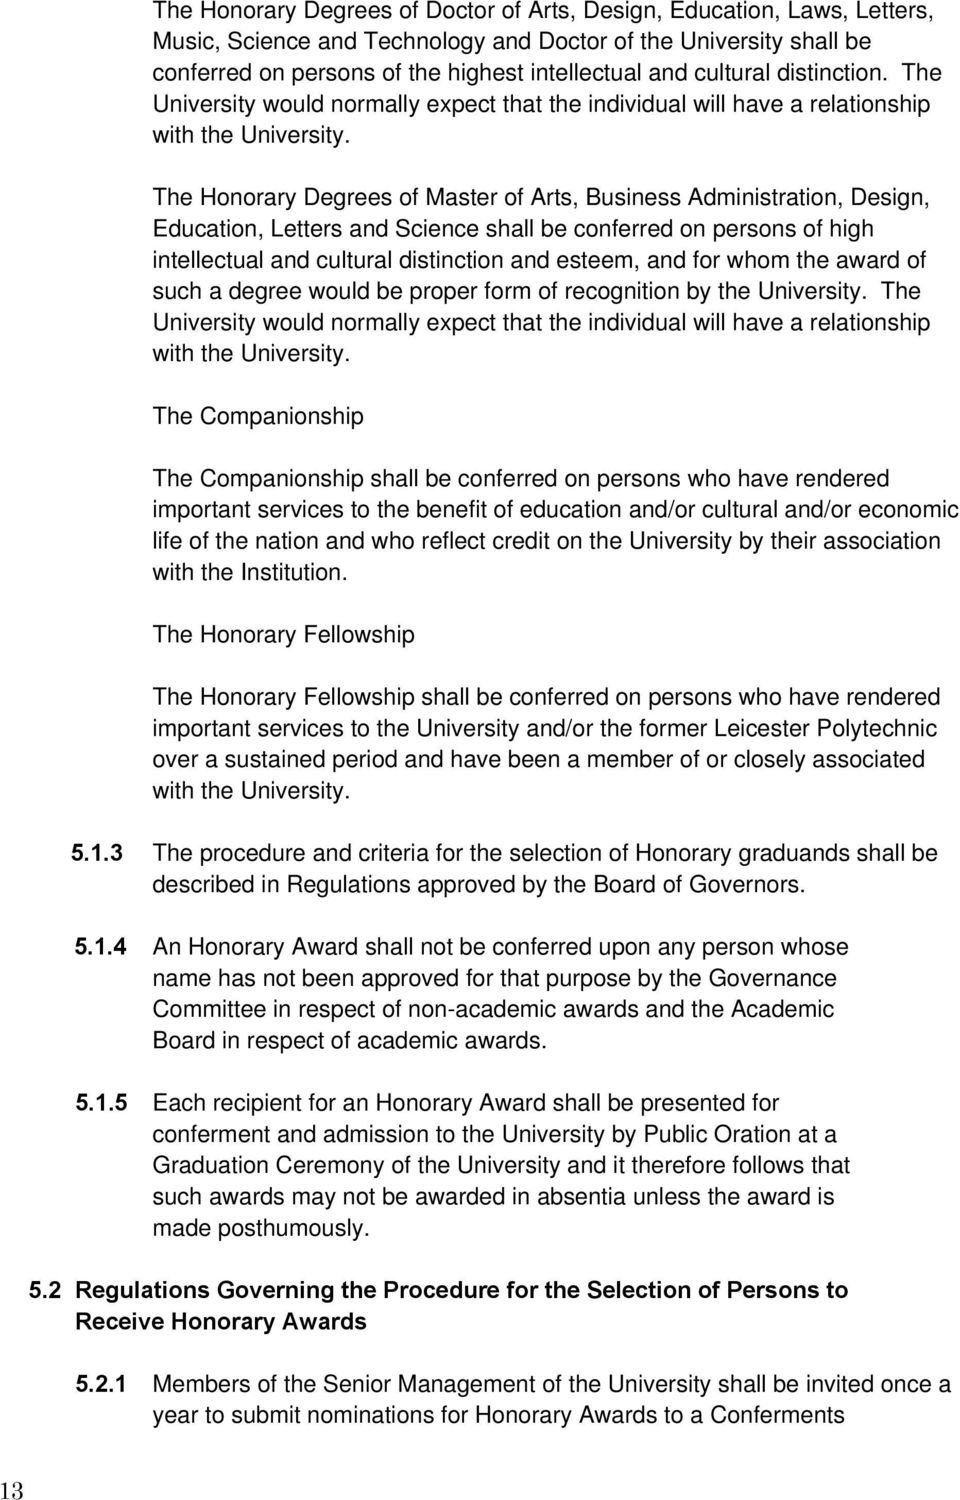 The Honorary Degrees of Master of Arts, Business Administration, Design, Education, Letters and Science shall be conferred on persons of high intellectual and cultural distinction and esteem, and for